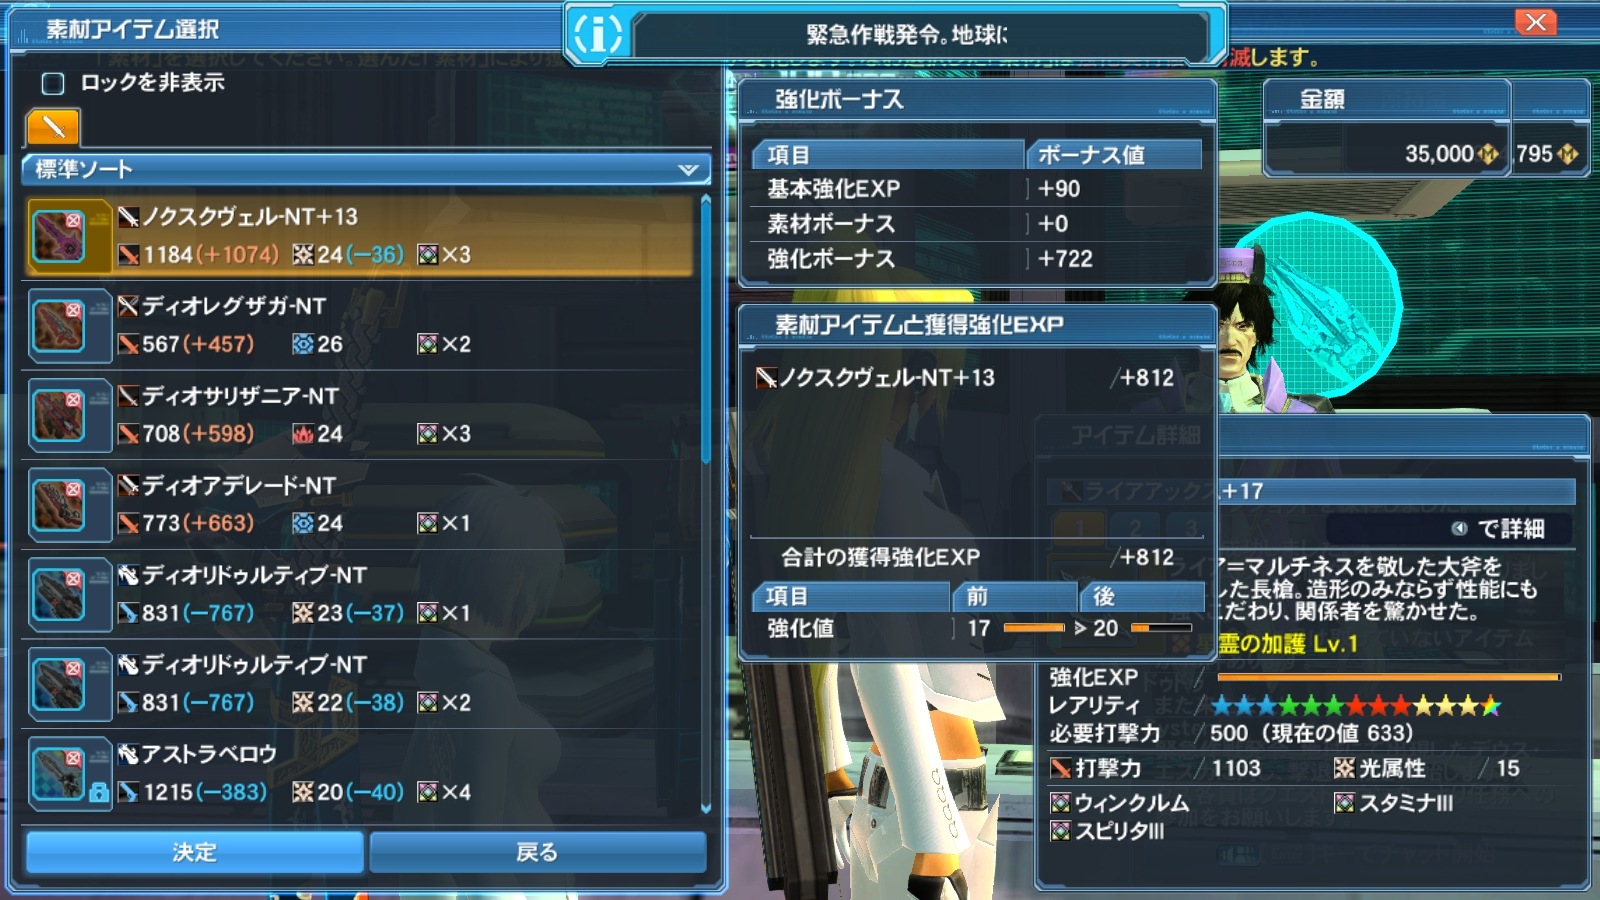 Pso2 Best Class 2019 PSO2: Grinding 13 Star Weapons | PSUBlog